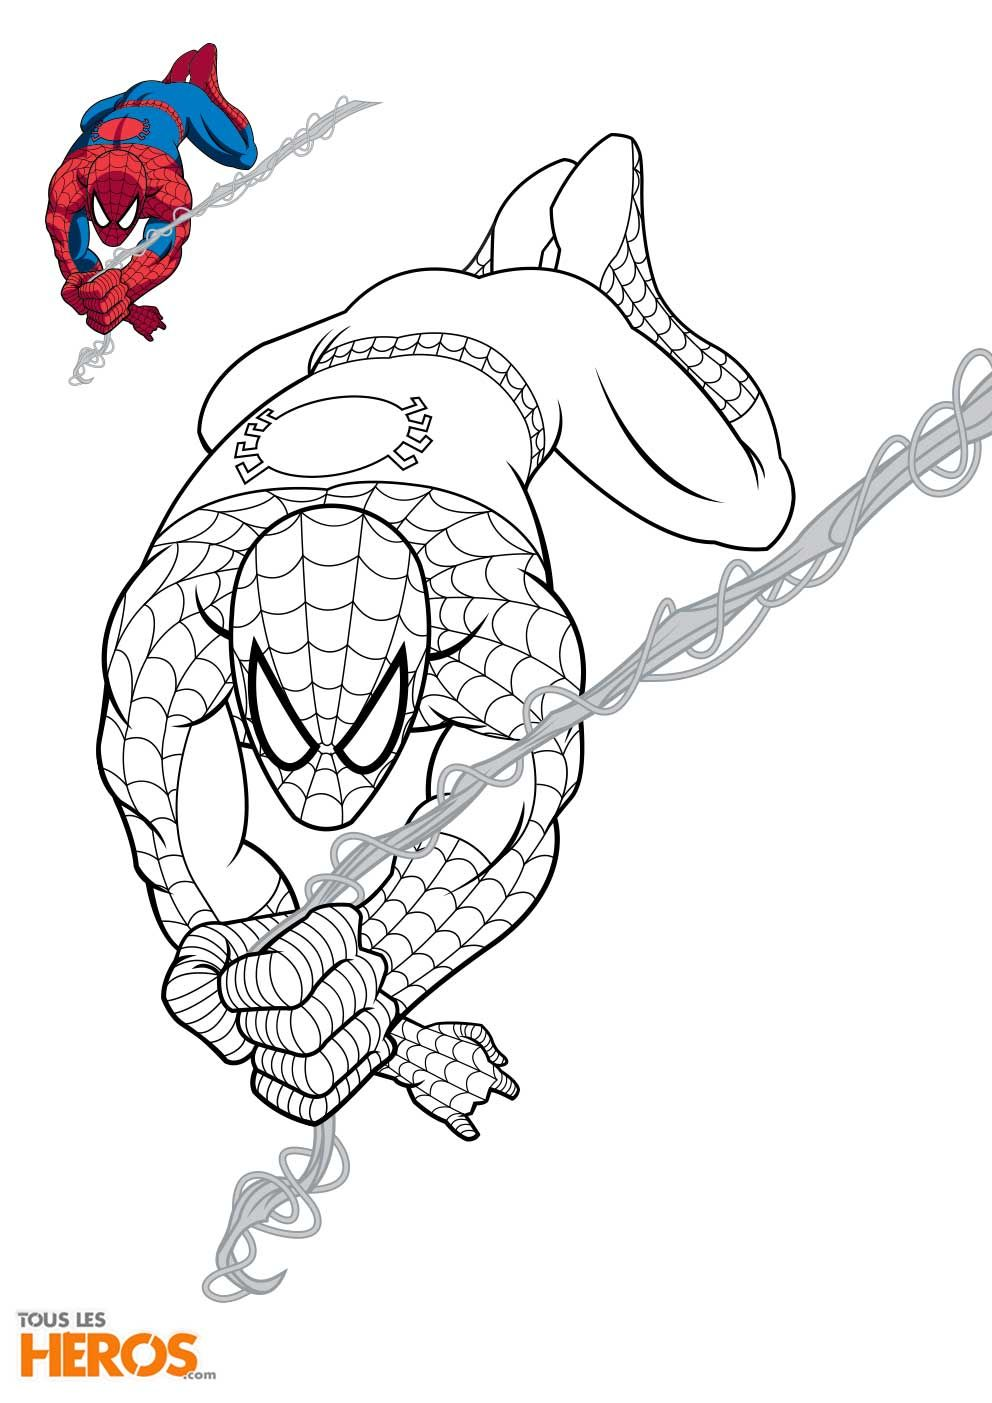 Coloriages Spiderman à Imprimer Sur Le Blog De Tlh Coloriages De